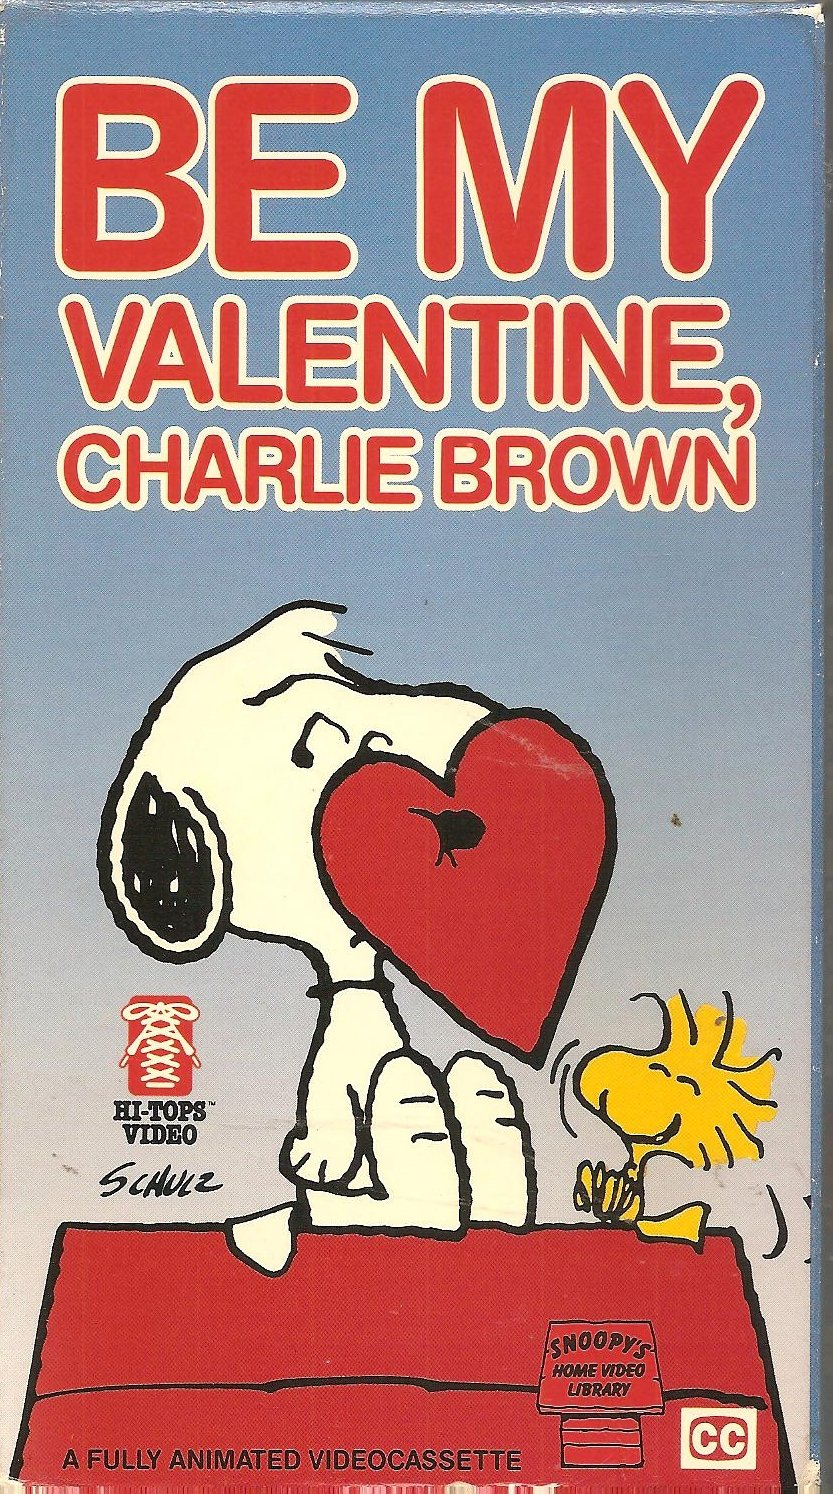 amazoncom be my valentine charlie brown movies tv - Charlie Brown Valentine Video